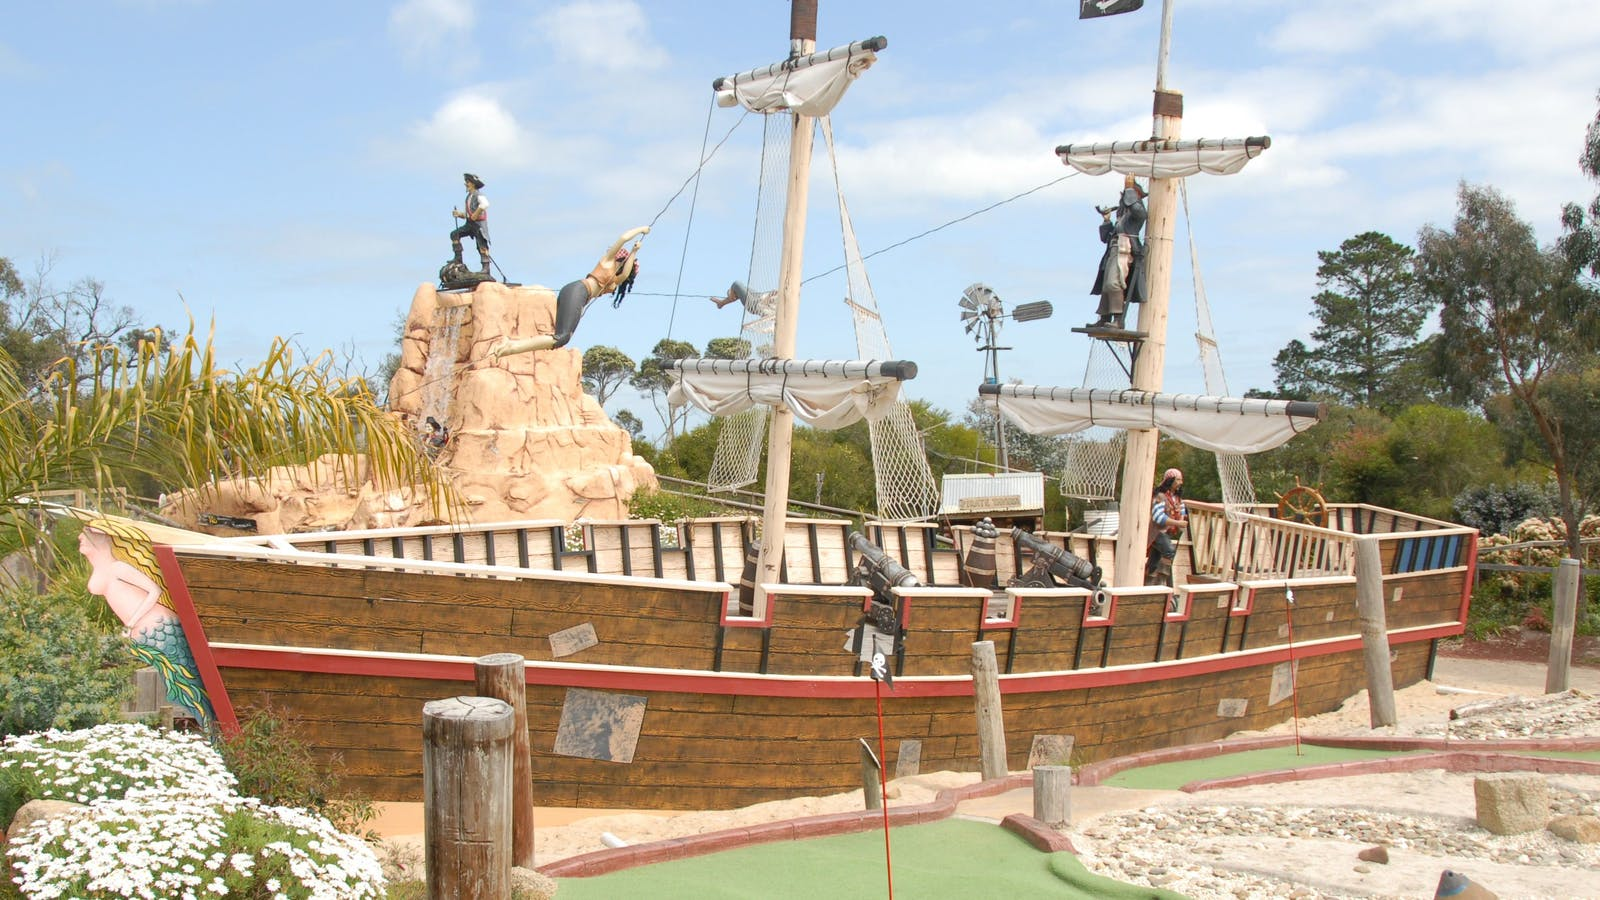 pirate mini-golf